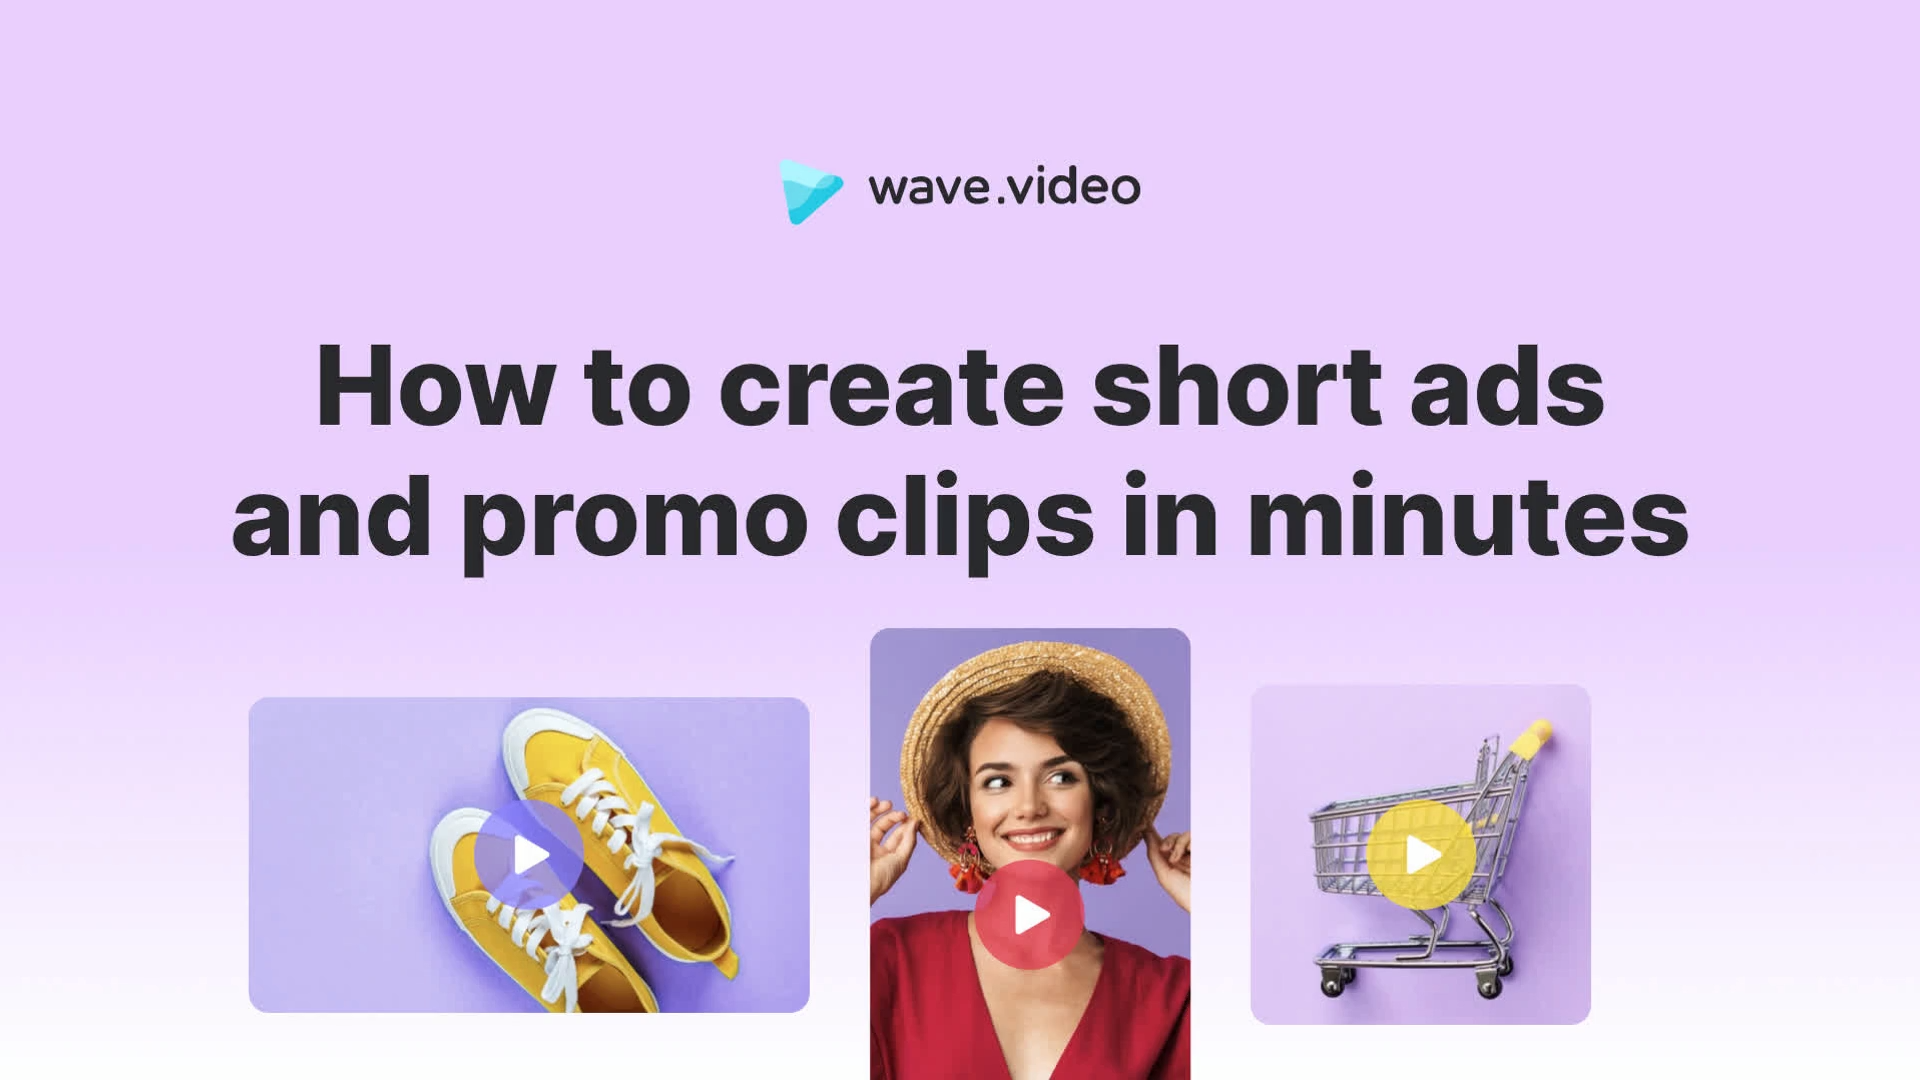 How to create short ads and promo clips in minutes